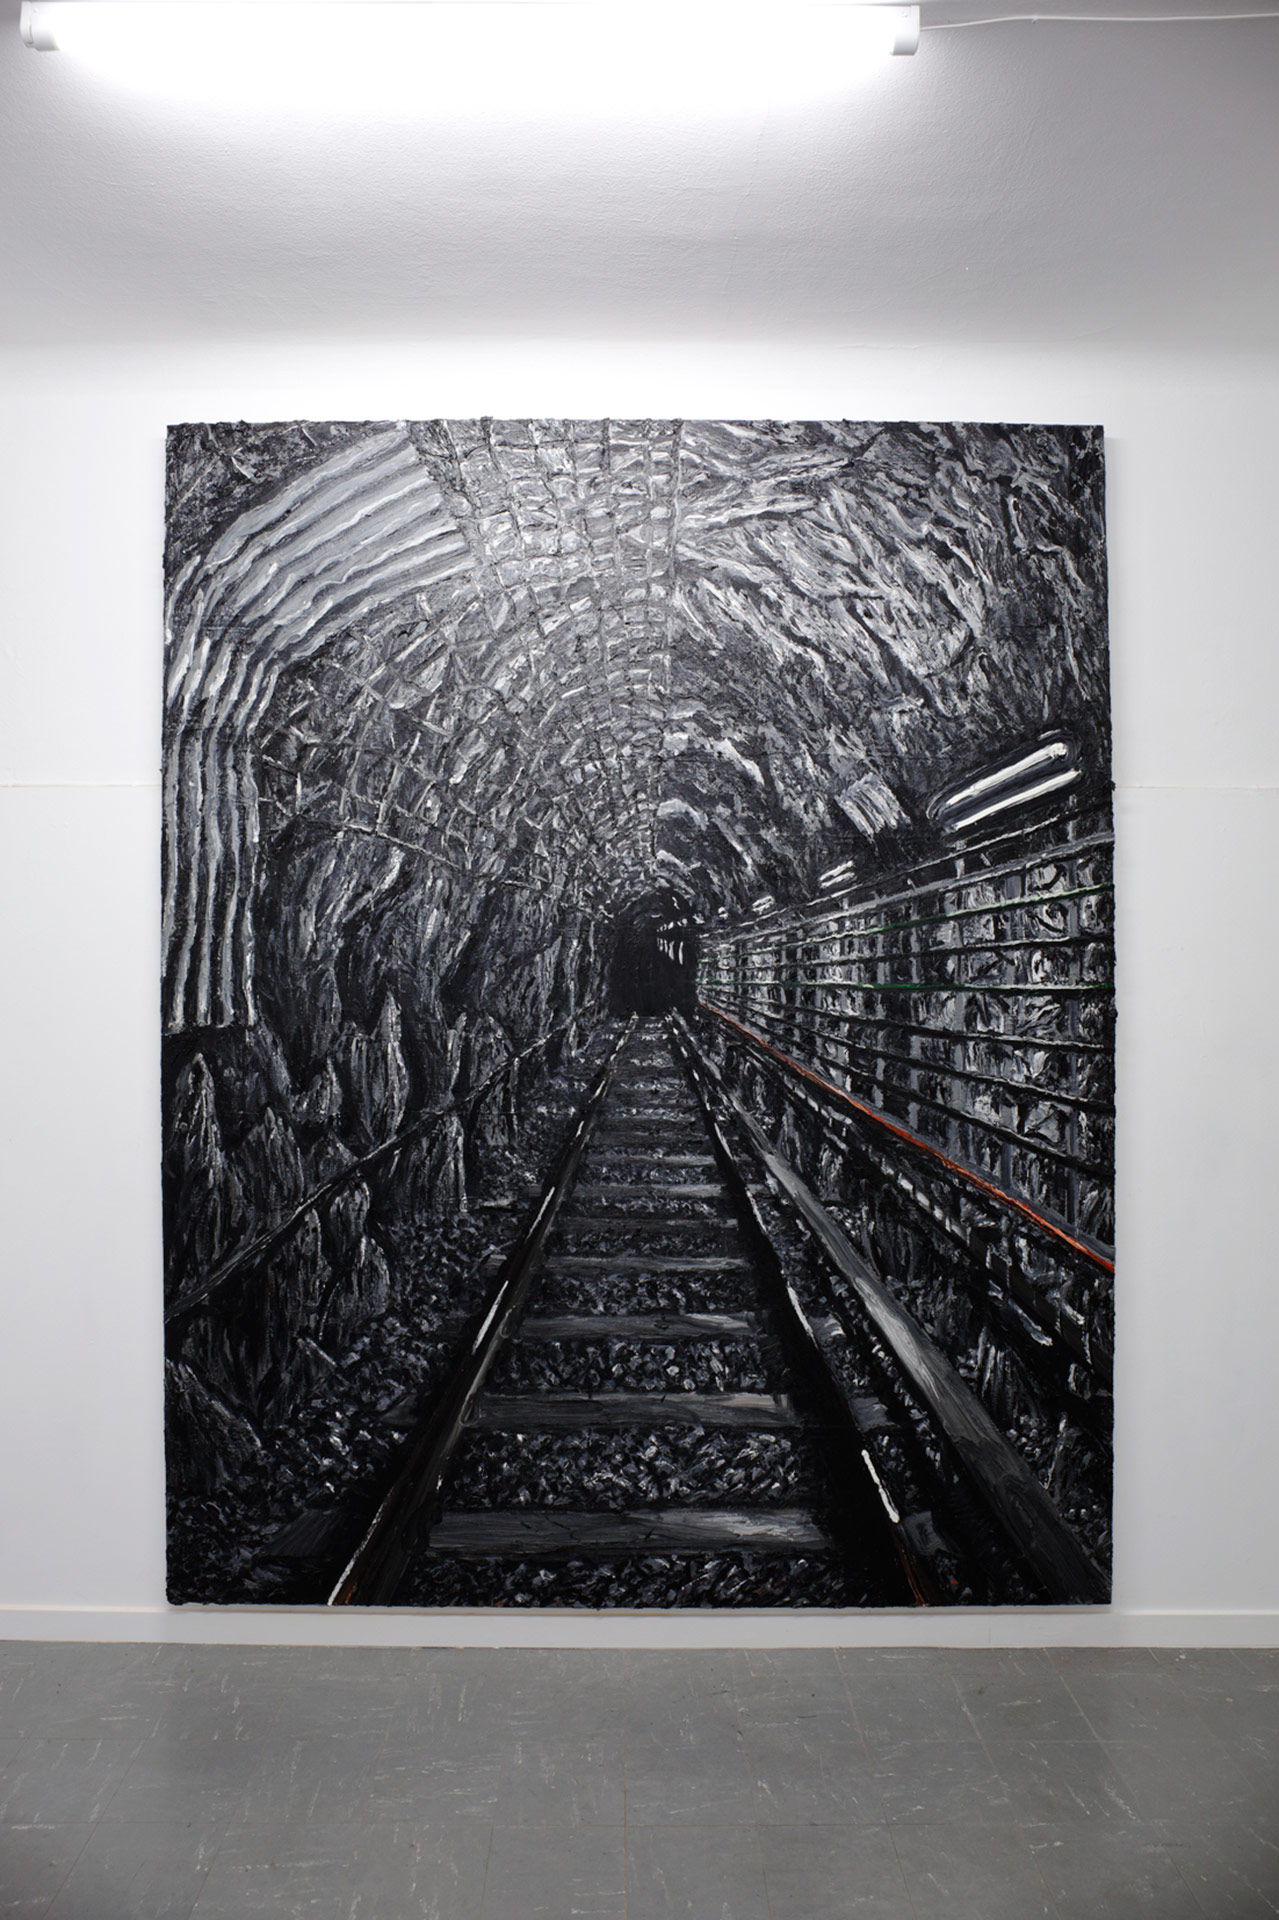 Roger Smeby, Tunnel, 2017